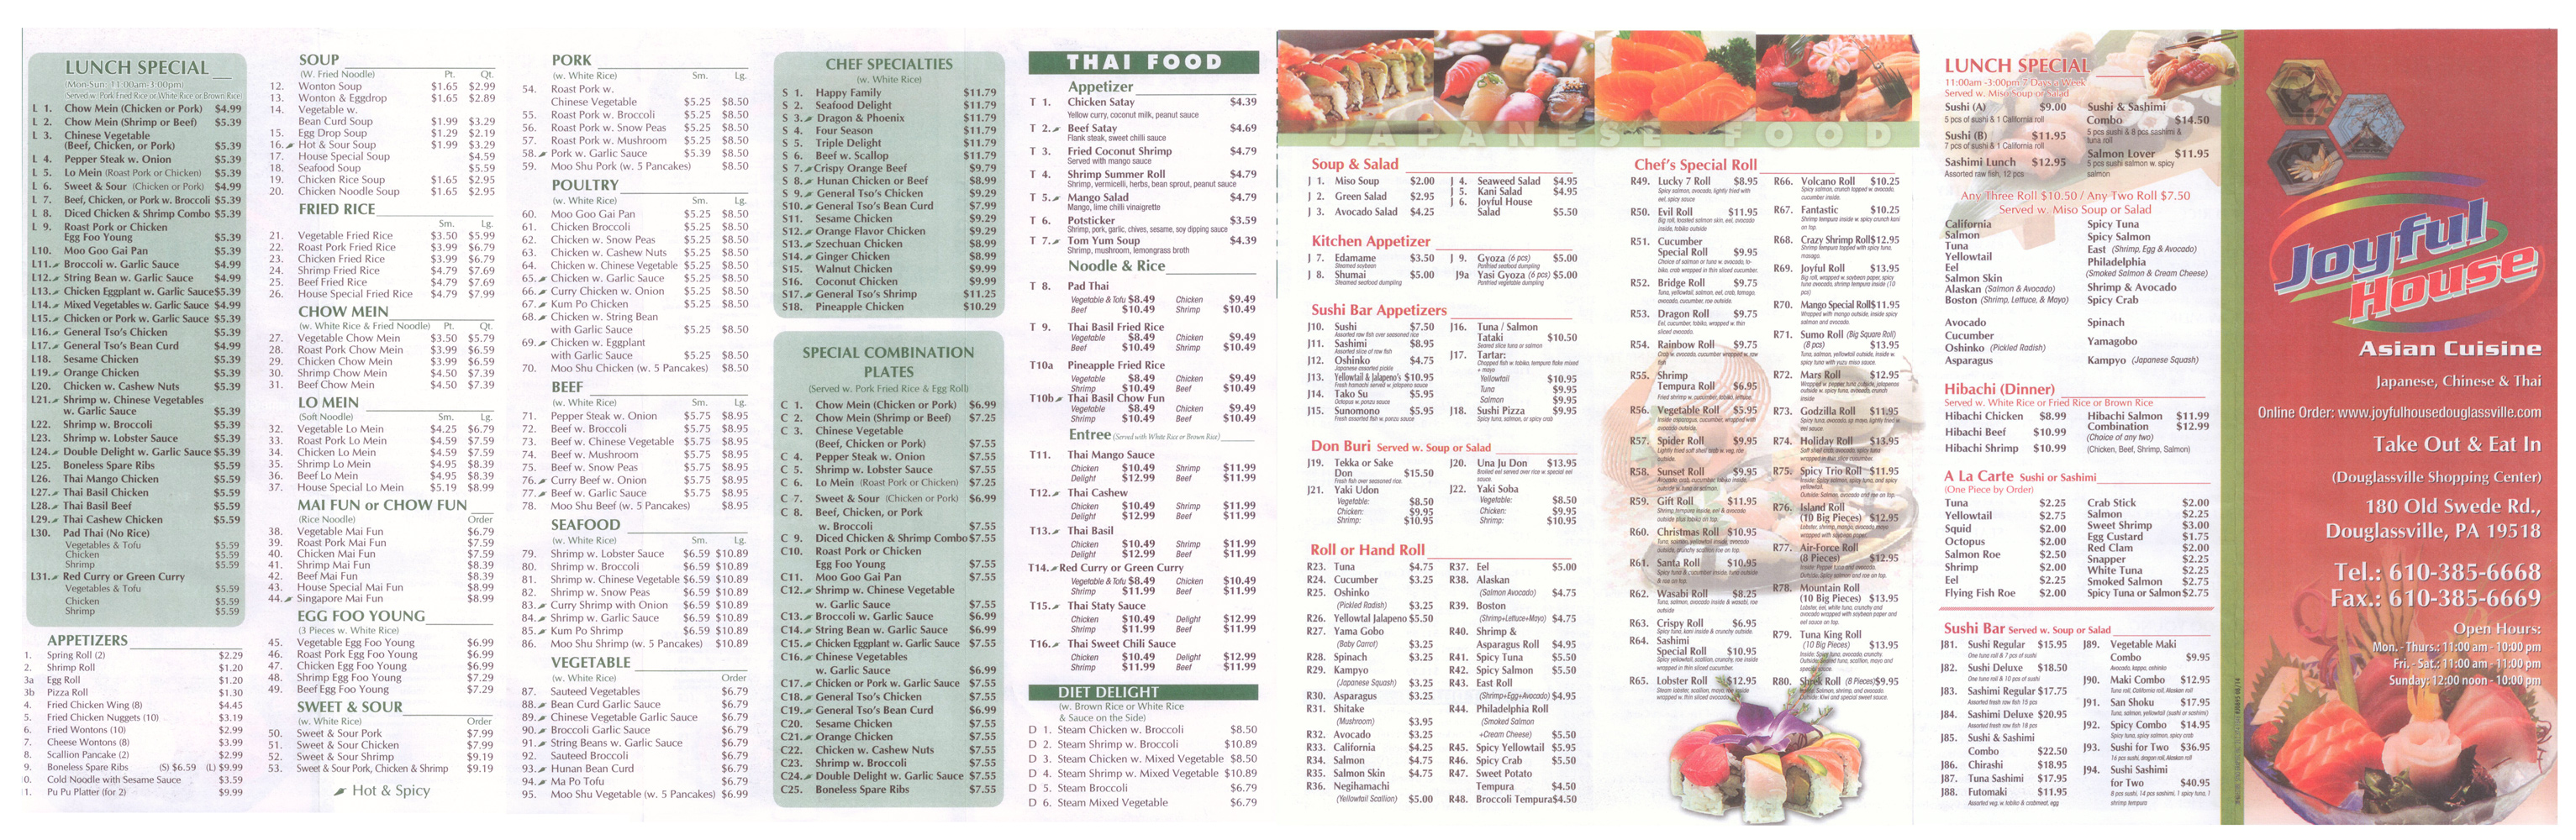 Joyful house asian restaurant menu berks mont menus for Asian cuisine menu